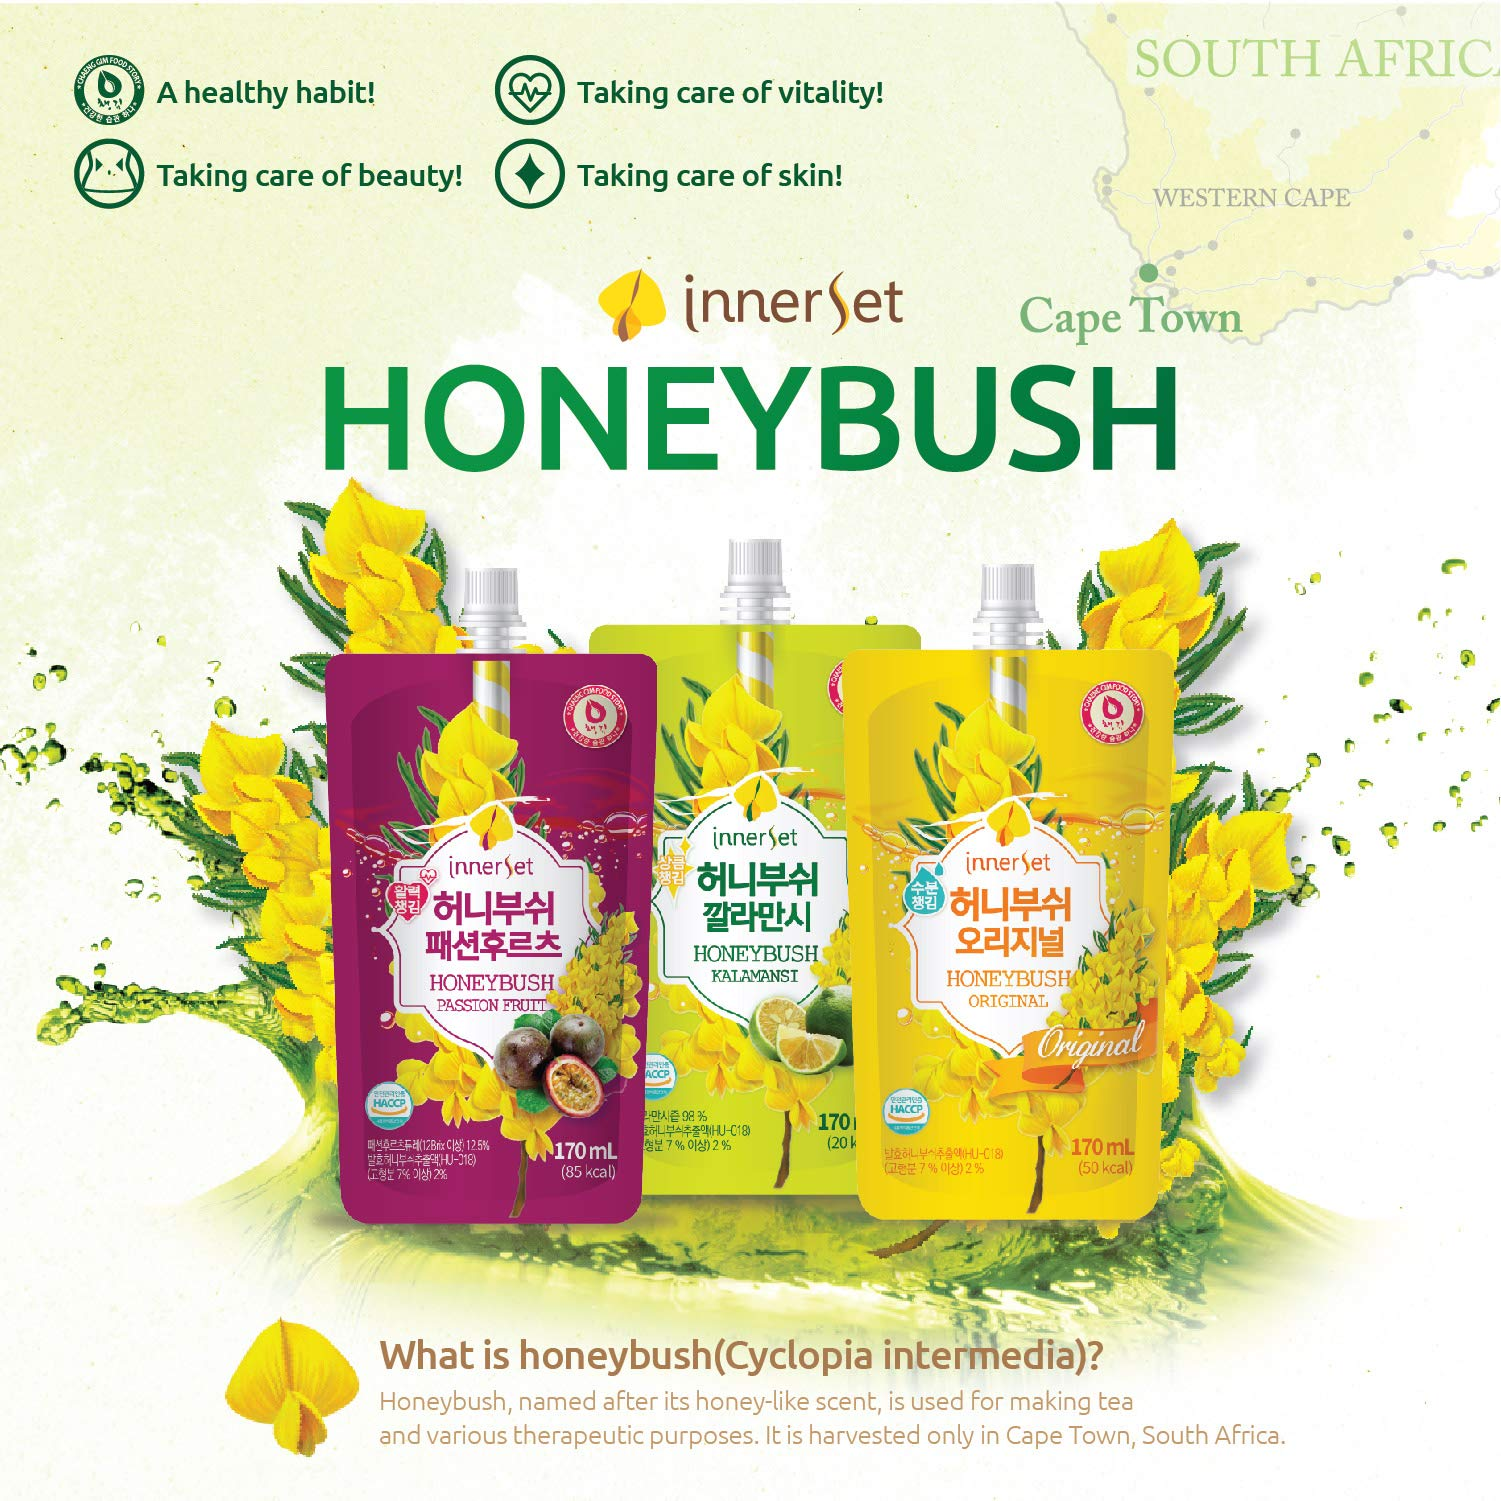 InnerSet Honeybush Pumpkin Nutricosmetic Beauty Drink - 100 ml x 72 pouches - Fermented Extract, Skincare Patented Formulation/Made in Korea/Ships from US California by InnerSet (Image #8)